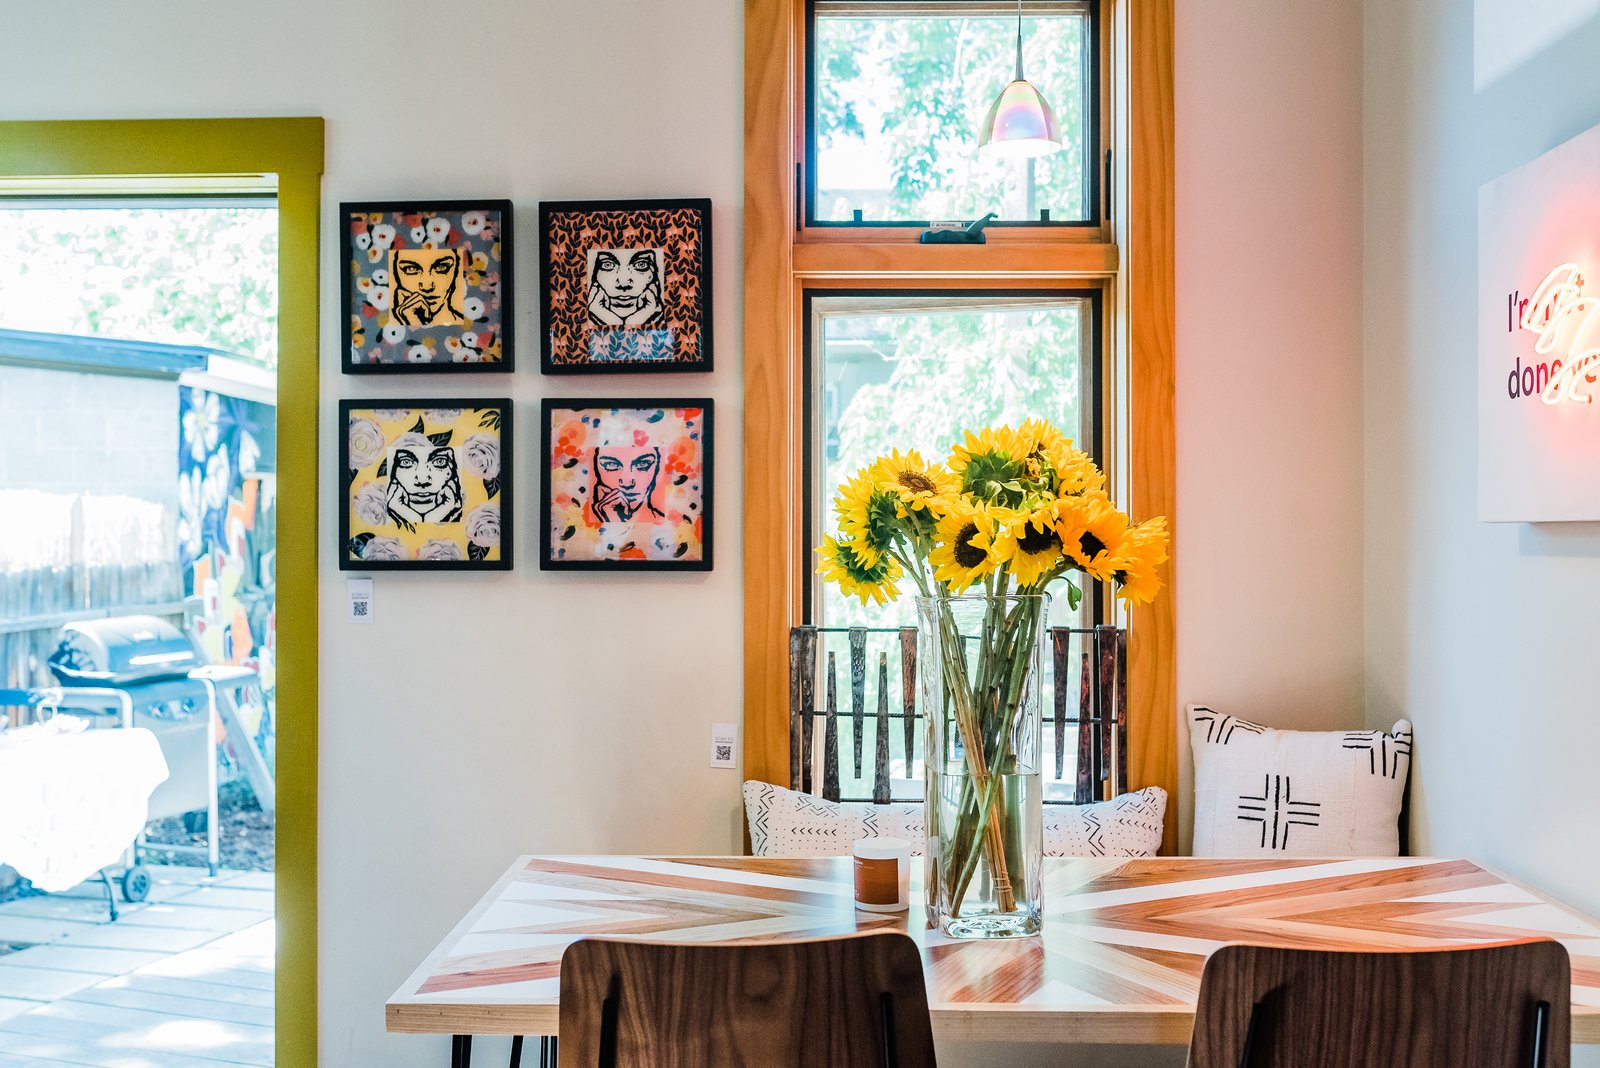 Dining Room A view to the backyard at The Sursy GandyHouse.  Meet The Makers: PILLOWS / Olive & Olde's (Denver, CO) TABLE / The Sursy Collection x Protea & Pine (Denver, CO) NEON ART / Scott Young (Denver, CO) 'FACES' COLLECTION / WCB Designs (Nashville, TN)  The Sursy GandyHouse by The Sursy from The Sursy WeeHouse